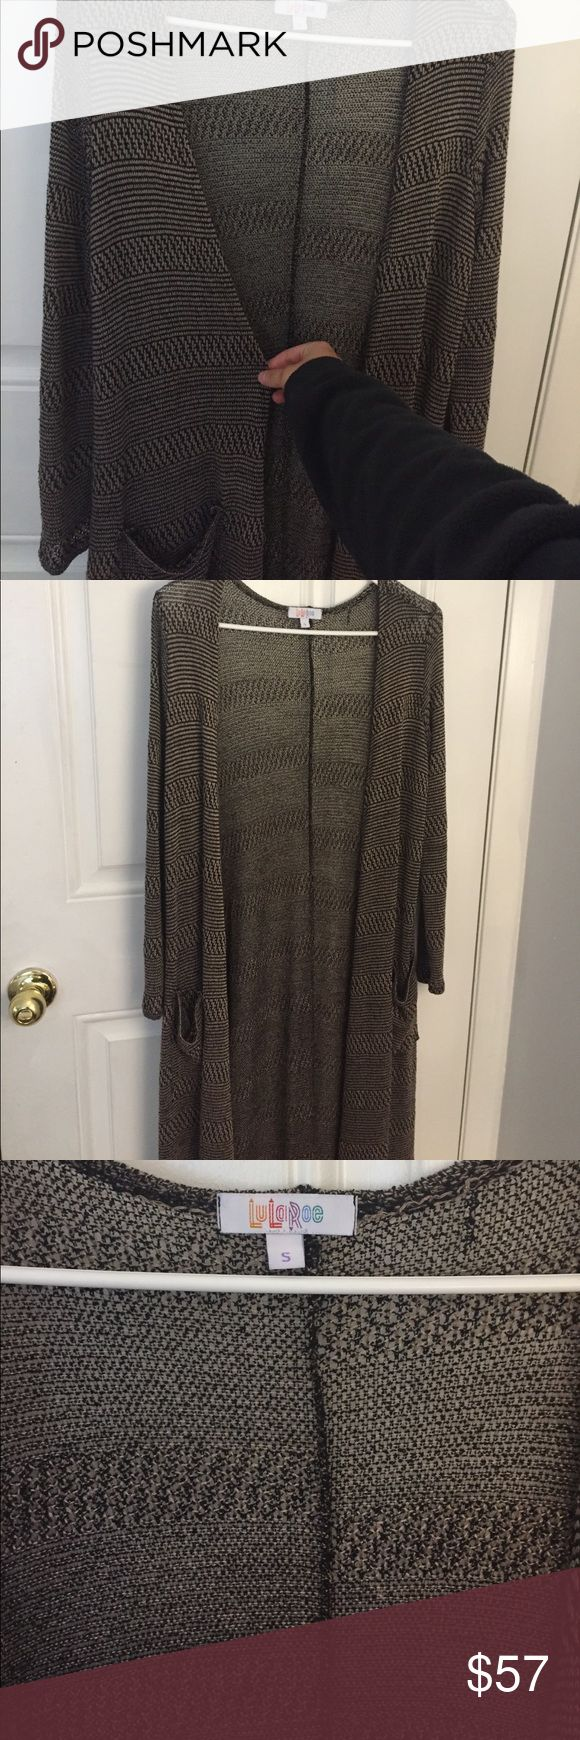 LulaRoe Sarah Cardigan Tan and black brand new Sarah cardigan. Size small LuLaRoe Sweaters Cardigans